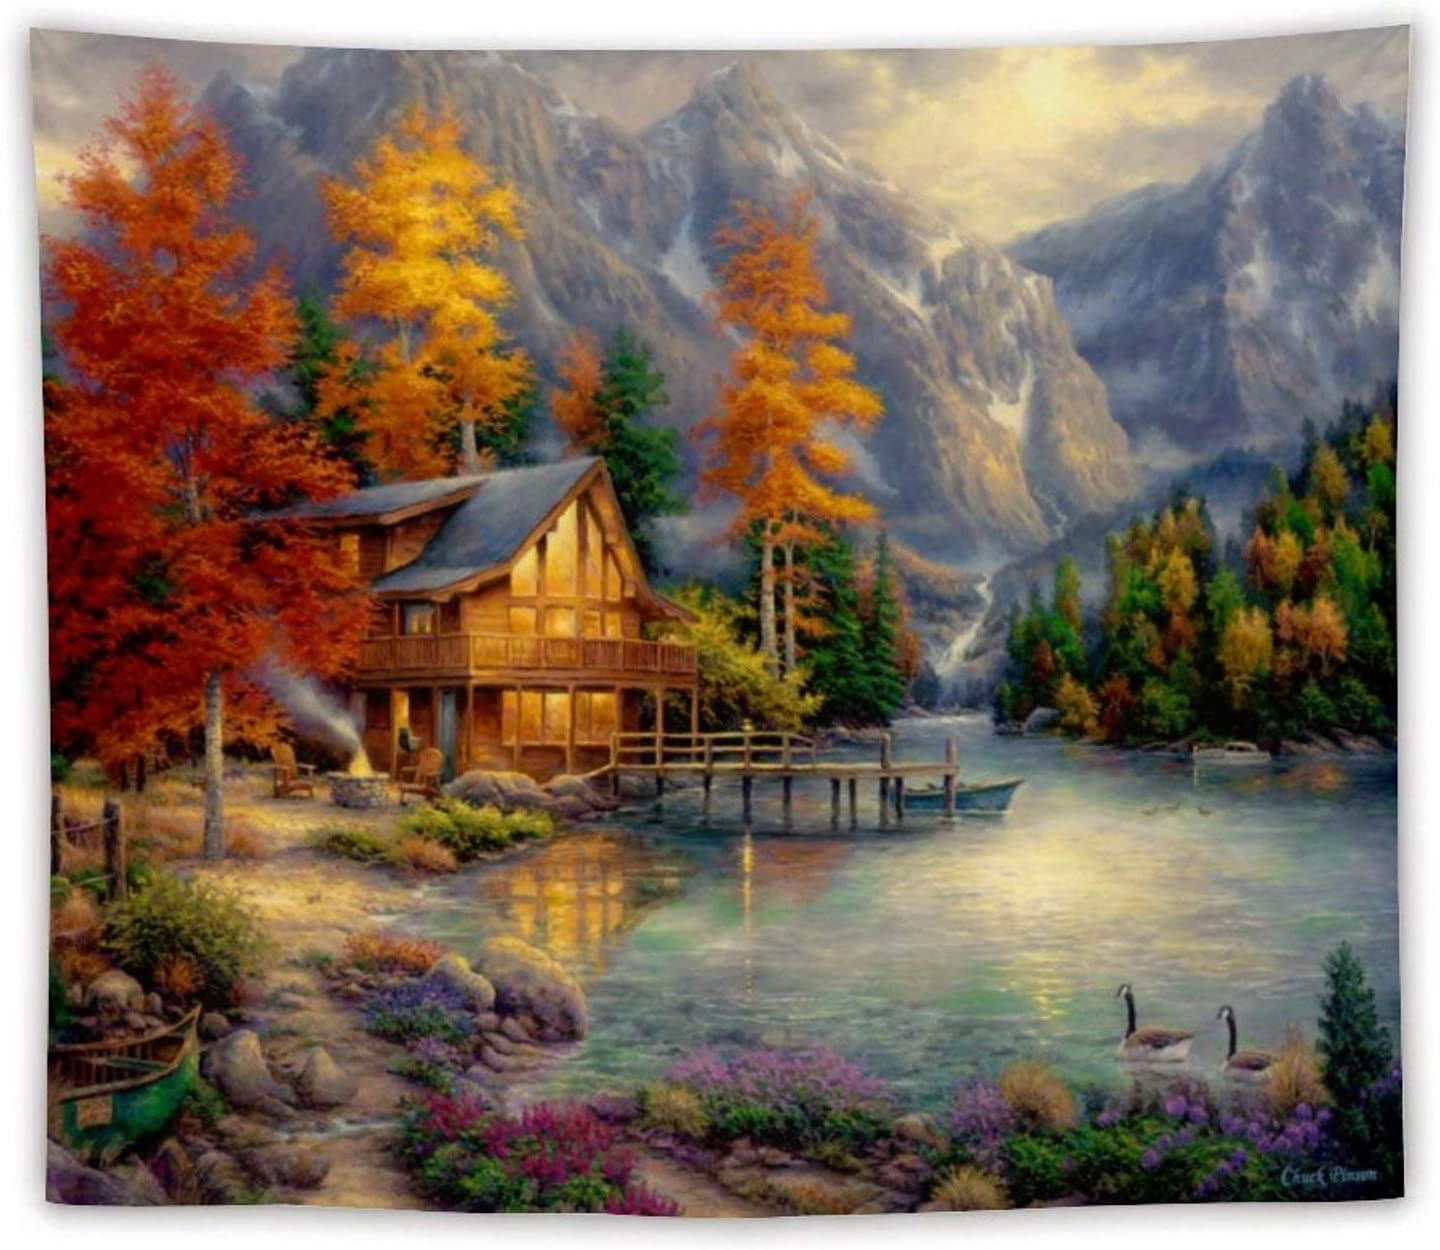 Tapestry Wall Hanging - Living Room Wall Decor for Women Girls, Multiple Styles for Choose - Autumn Lake Mountains Cottage Cabin